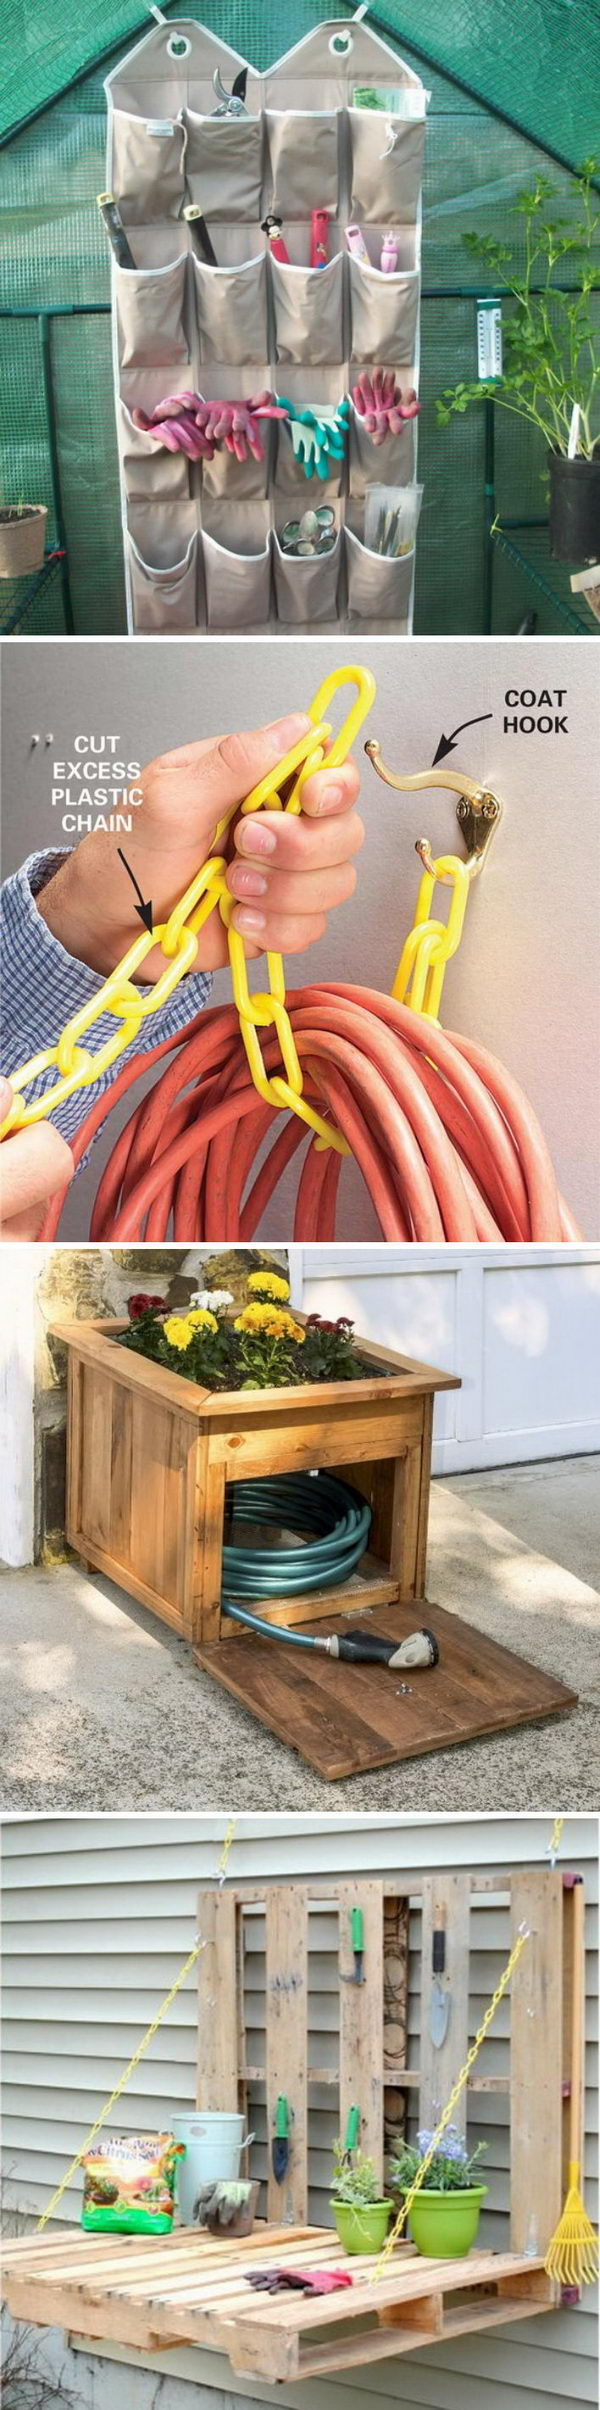 Awesome DIY Storage Ideas for Your Garden.